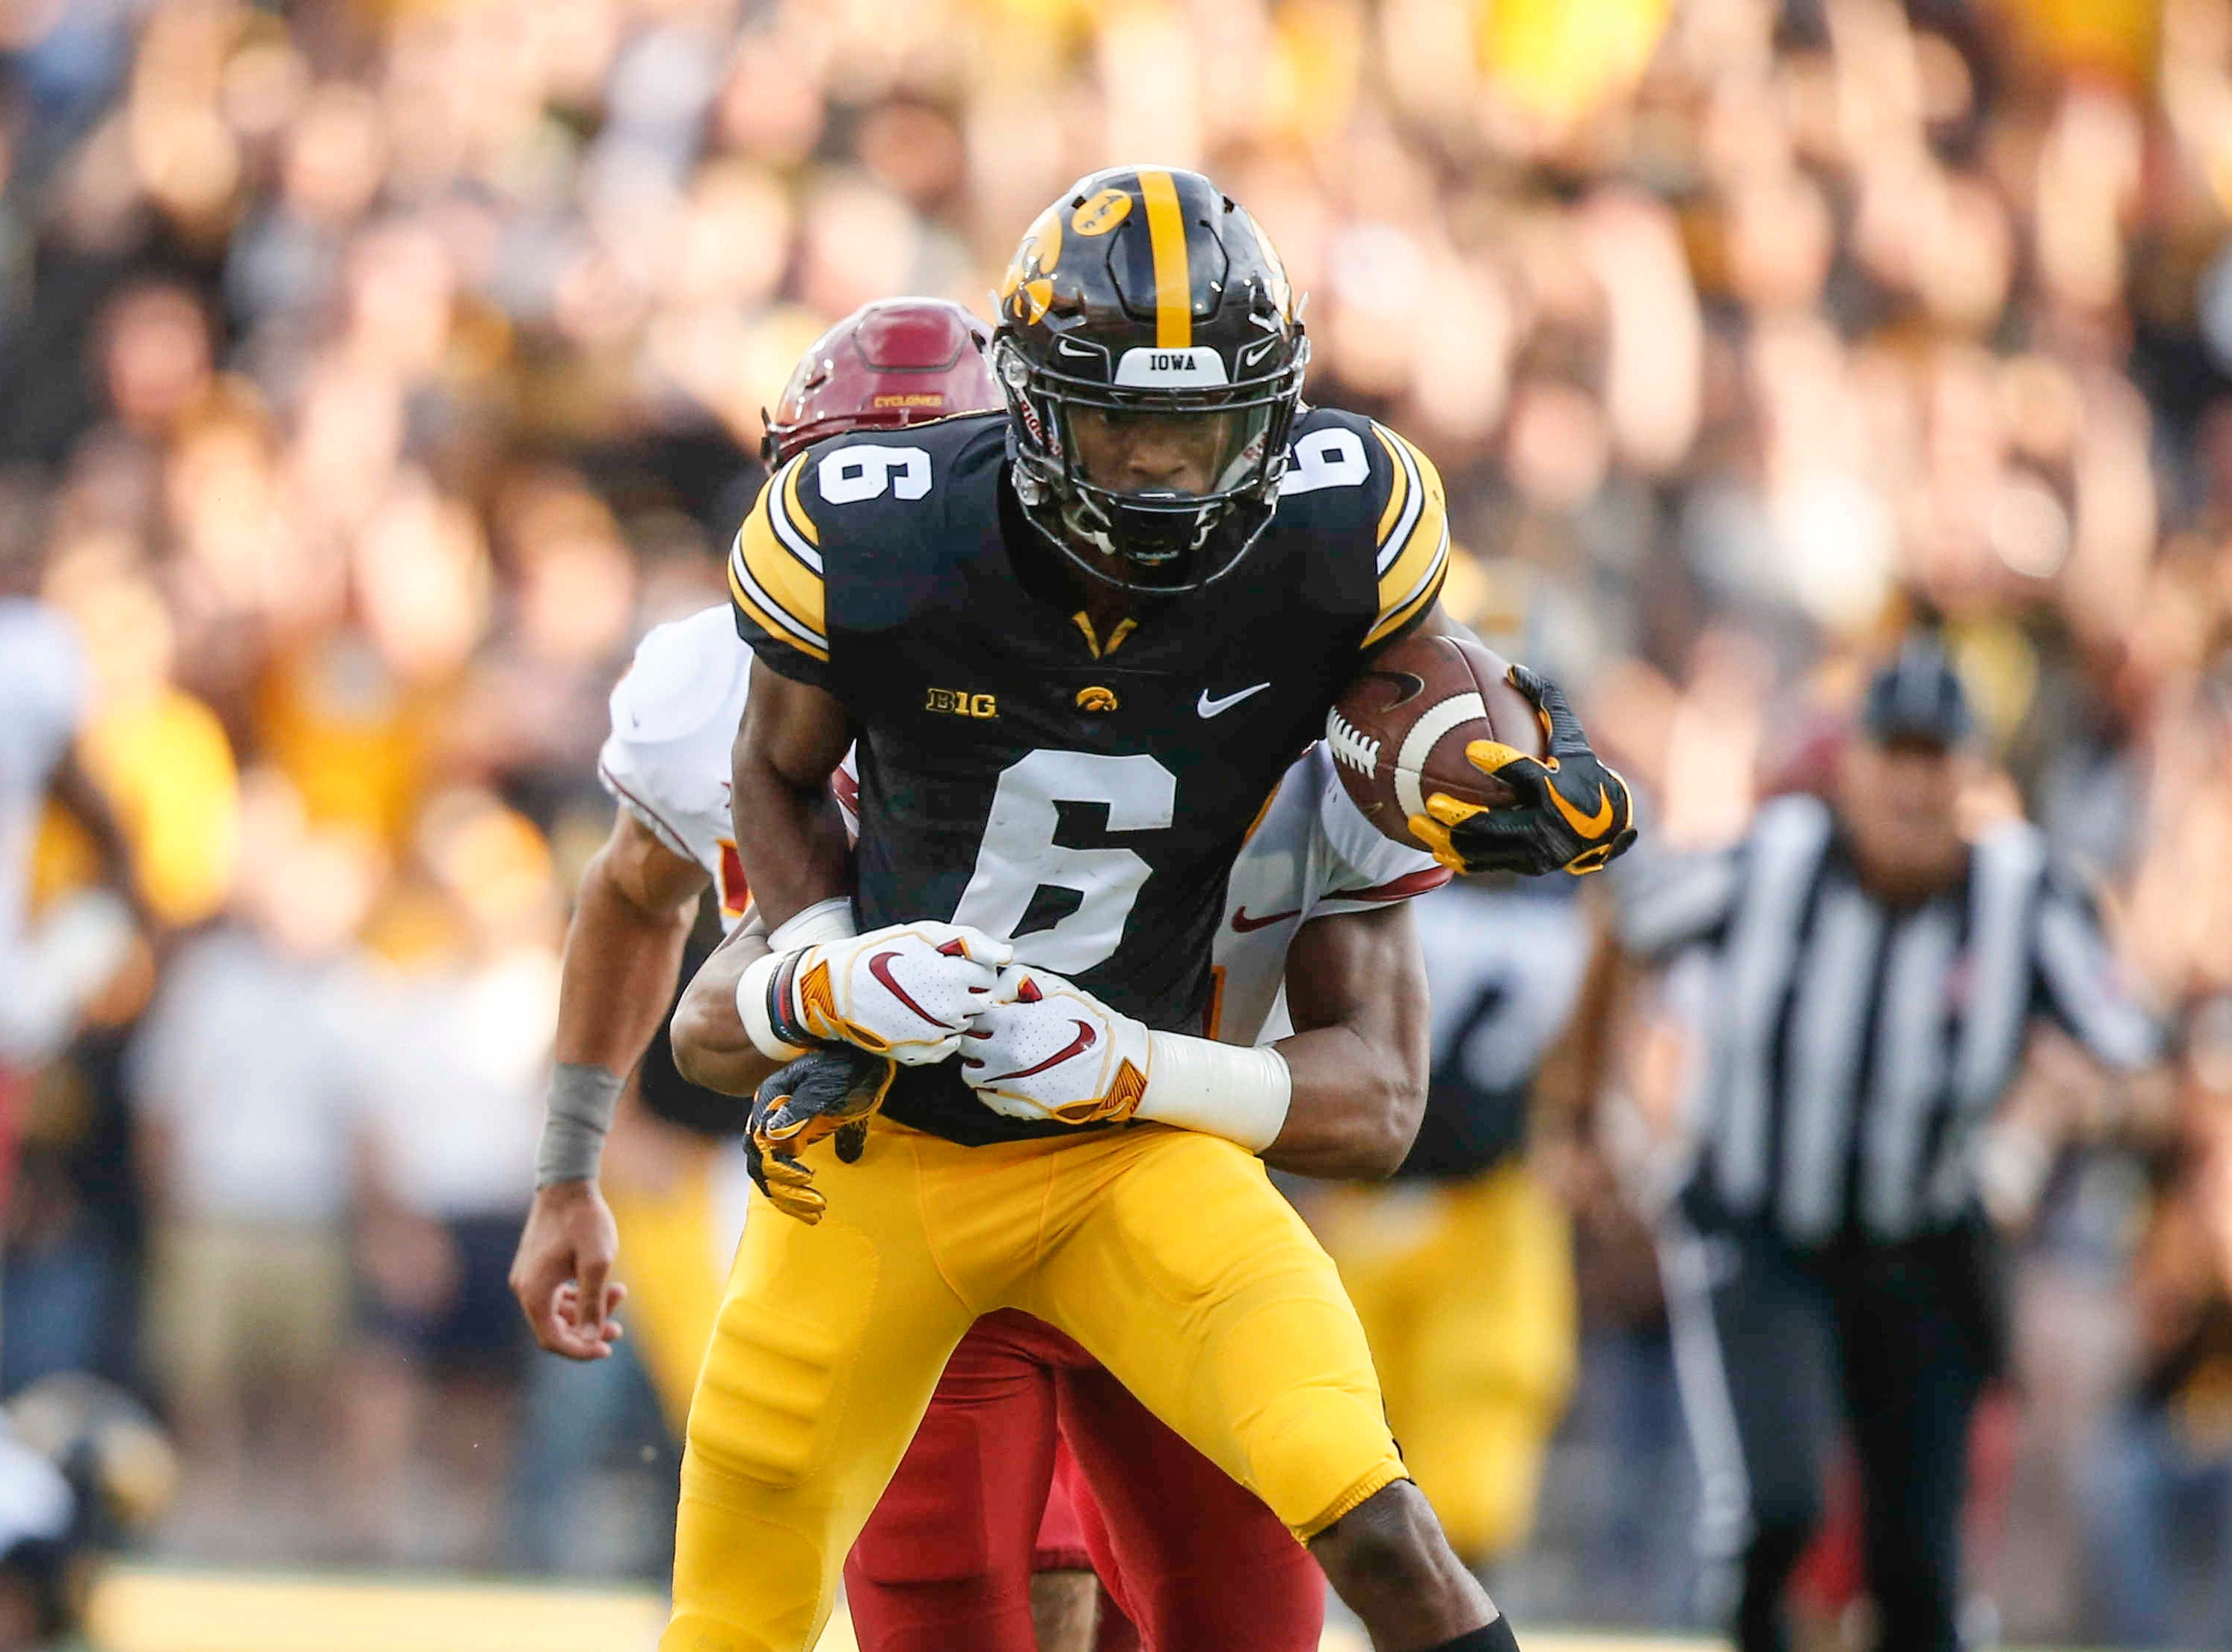 Iowa receiver Ihmir Smith-Marsette is caught after pulling in a reception against Iowa State on Saturday, Sept. 8, 2018, at Kinnick Stadium in Iowa City.